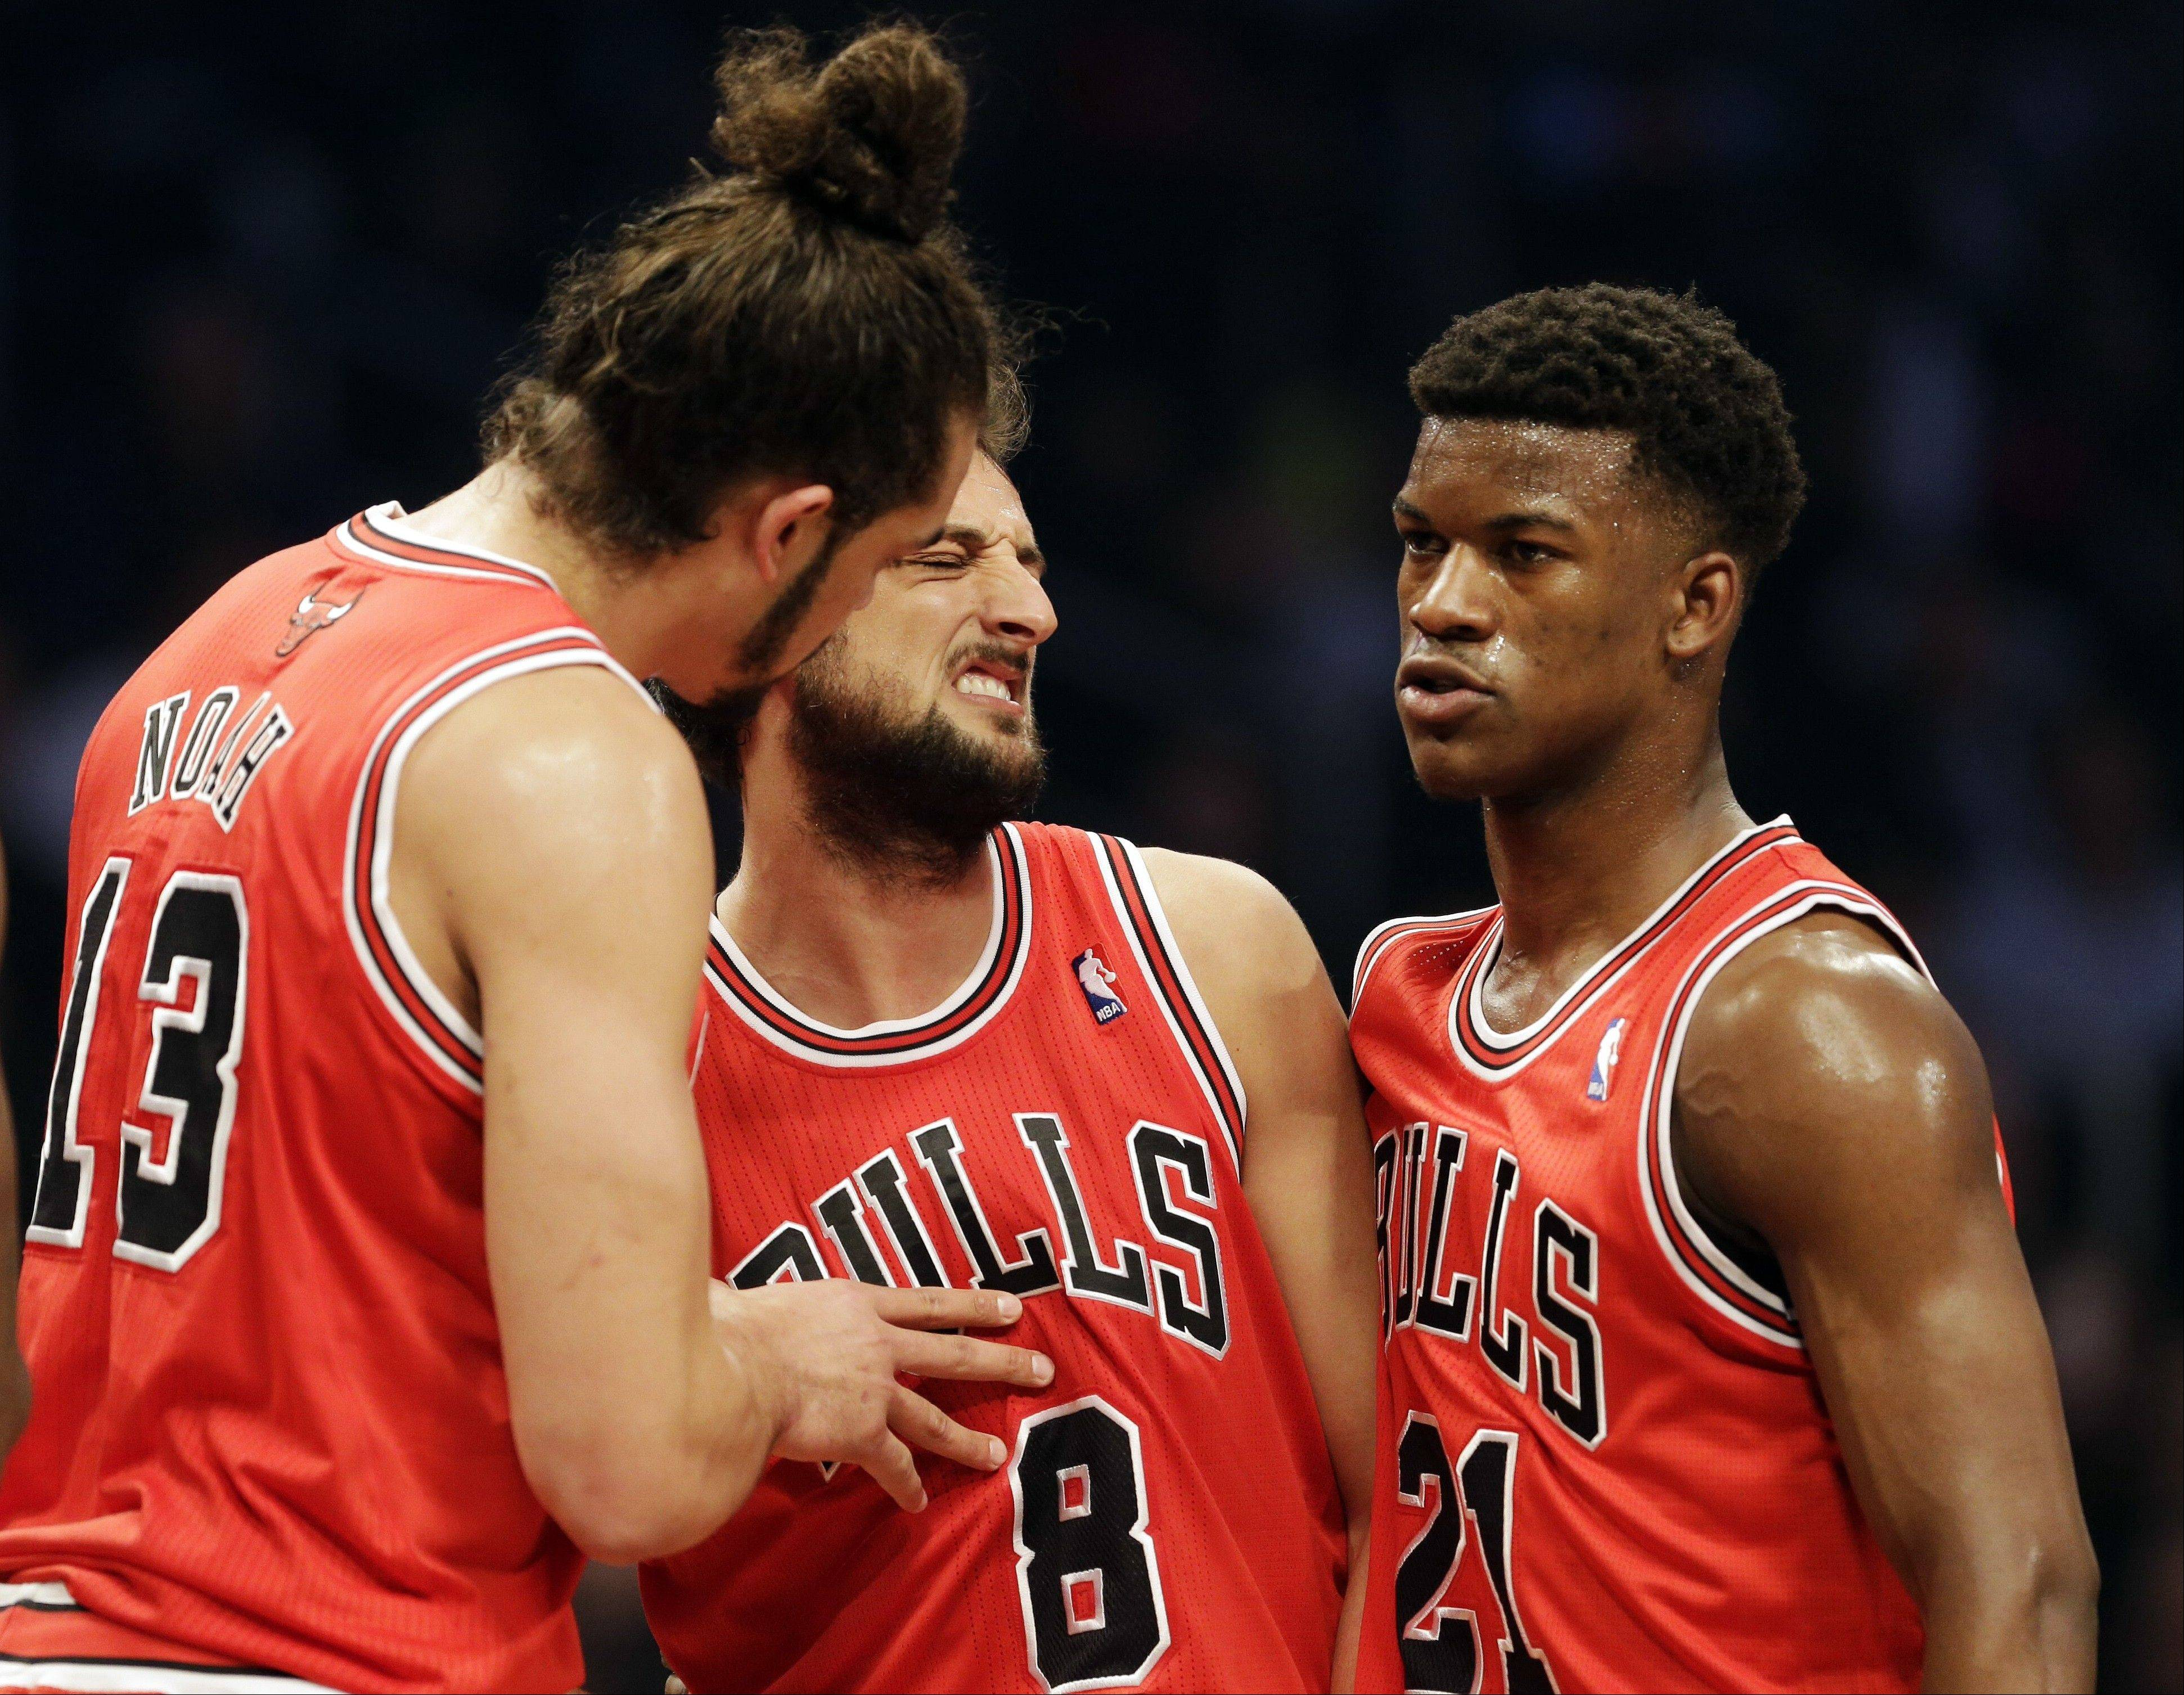 Chicago Bulls guard Marco Belinelli, center, reacts as teammates Joakim Noah, left, and Jimmy Butler talk to him during the first half in Game 7 of their first-round NBA basketball playoff series against the Brooklyn Nets in New York, Saturday, May 4, 2013.